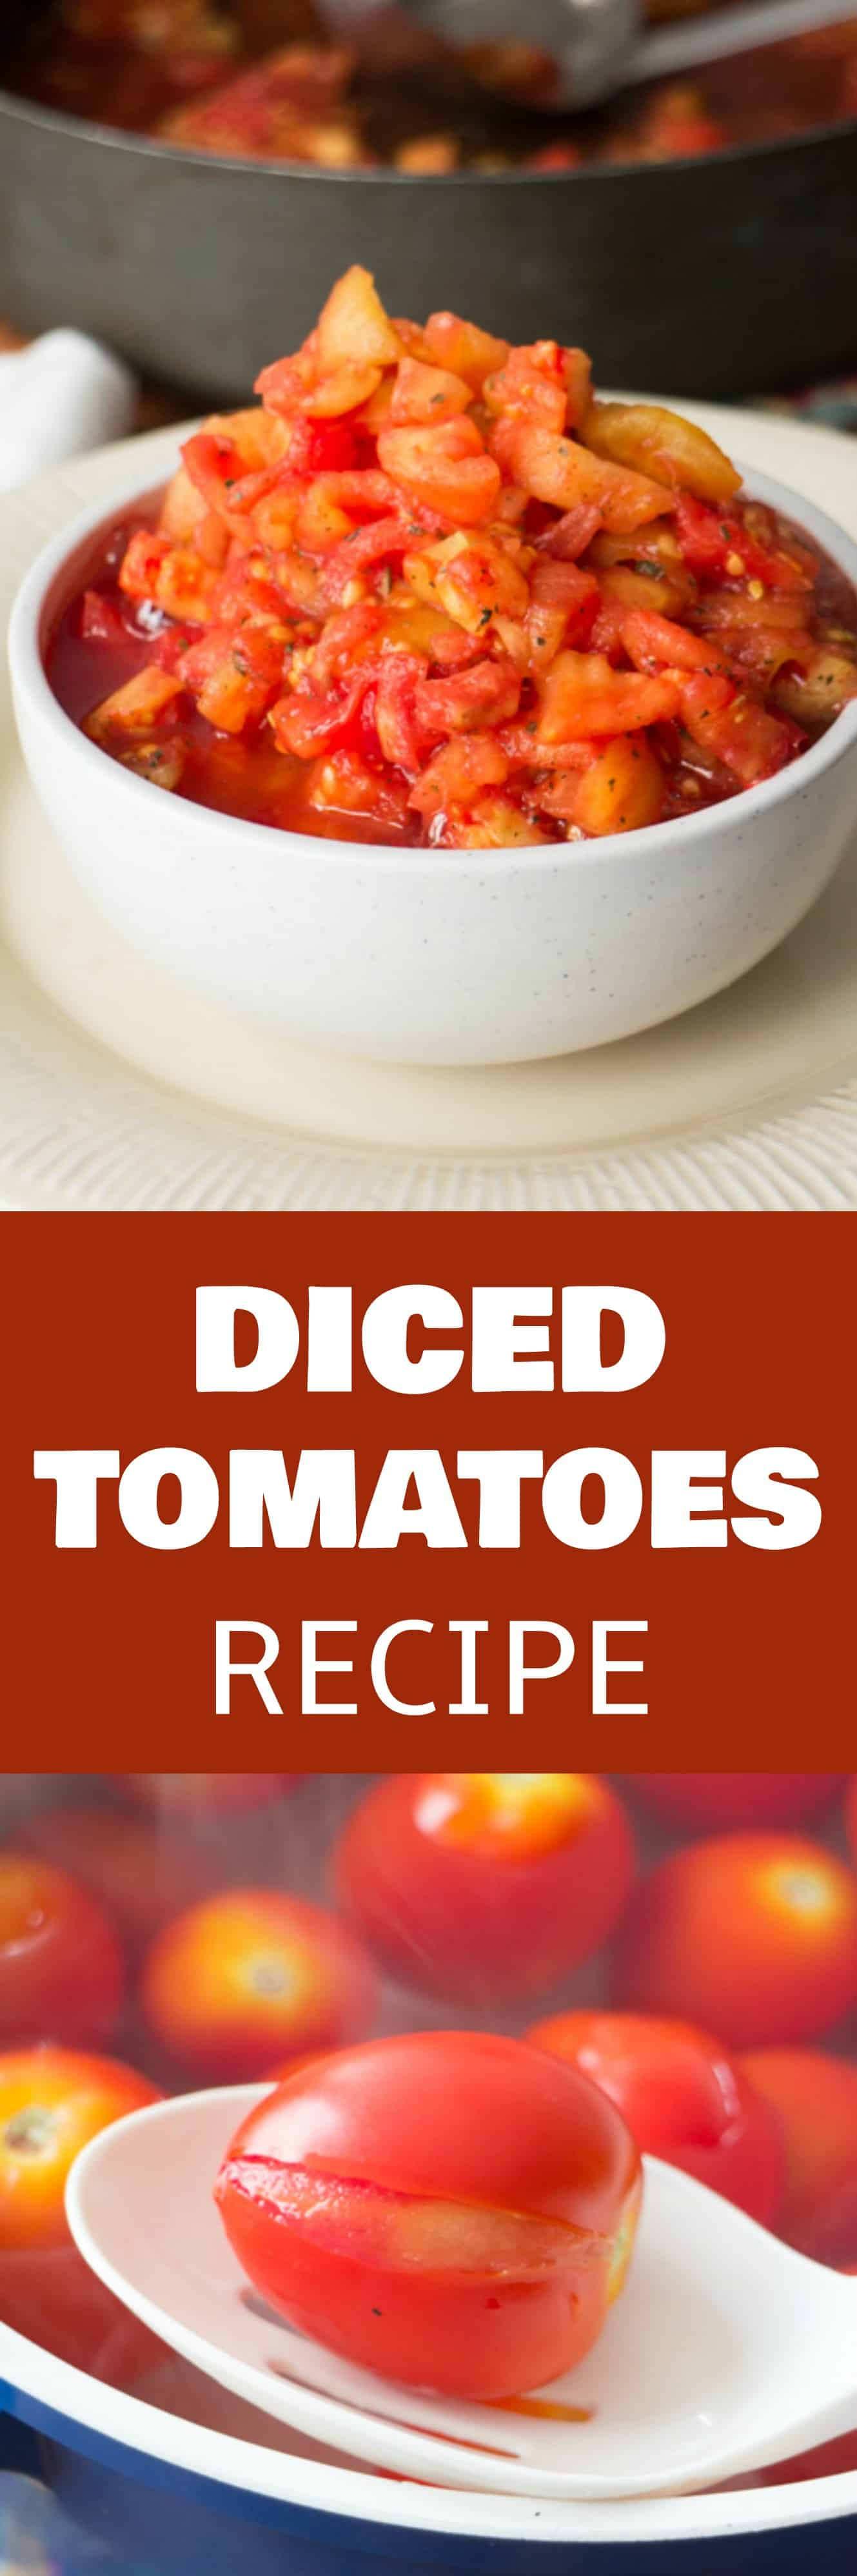 HOW TO MAKE diced tomatoes recipe from fresh tomatoes.  Step by step instructions walk you through the beginning all the way up to freezing them. This is a great way to preserve your garden tomatoes!